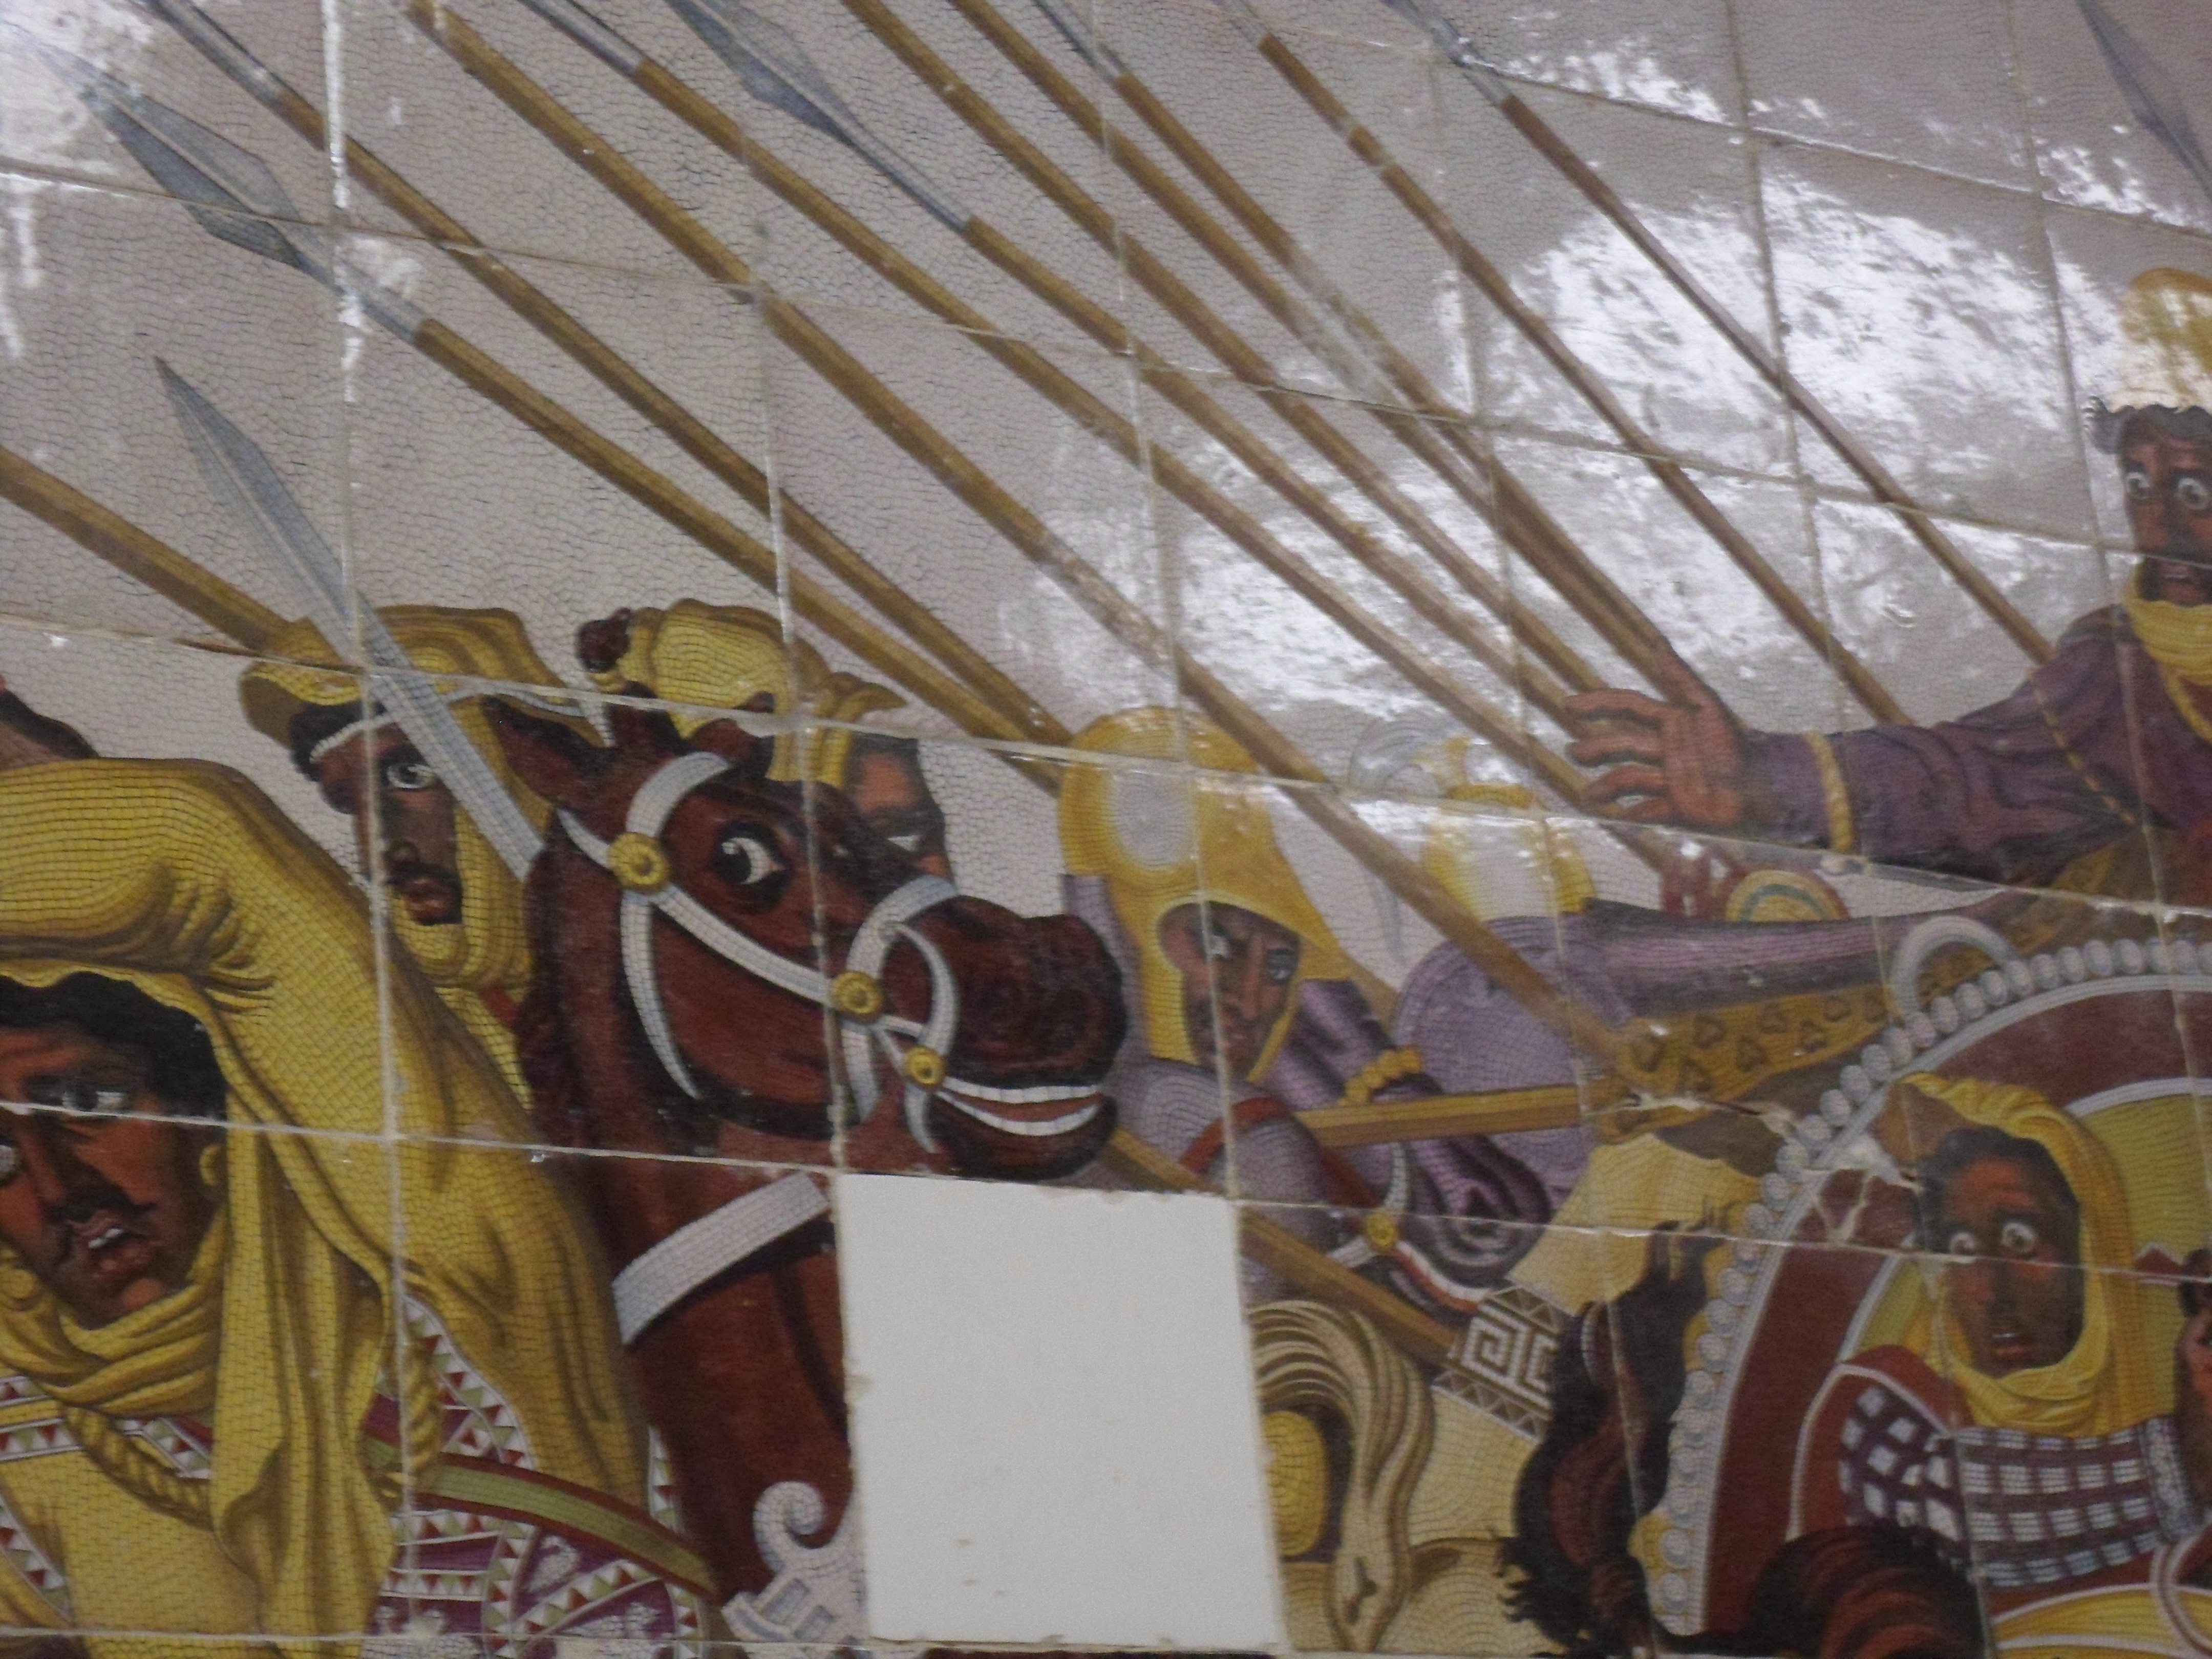 A reproduction of a battle between Persians and Macedonians painted on glazed tiles